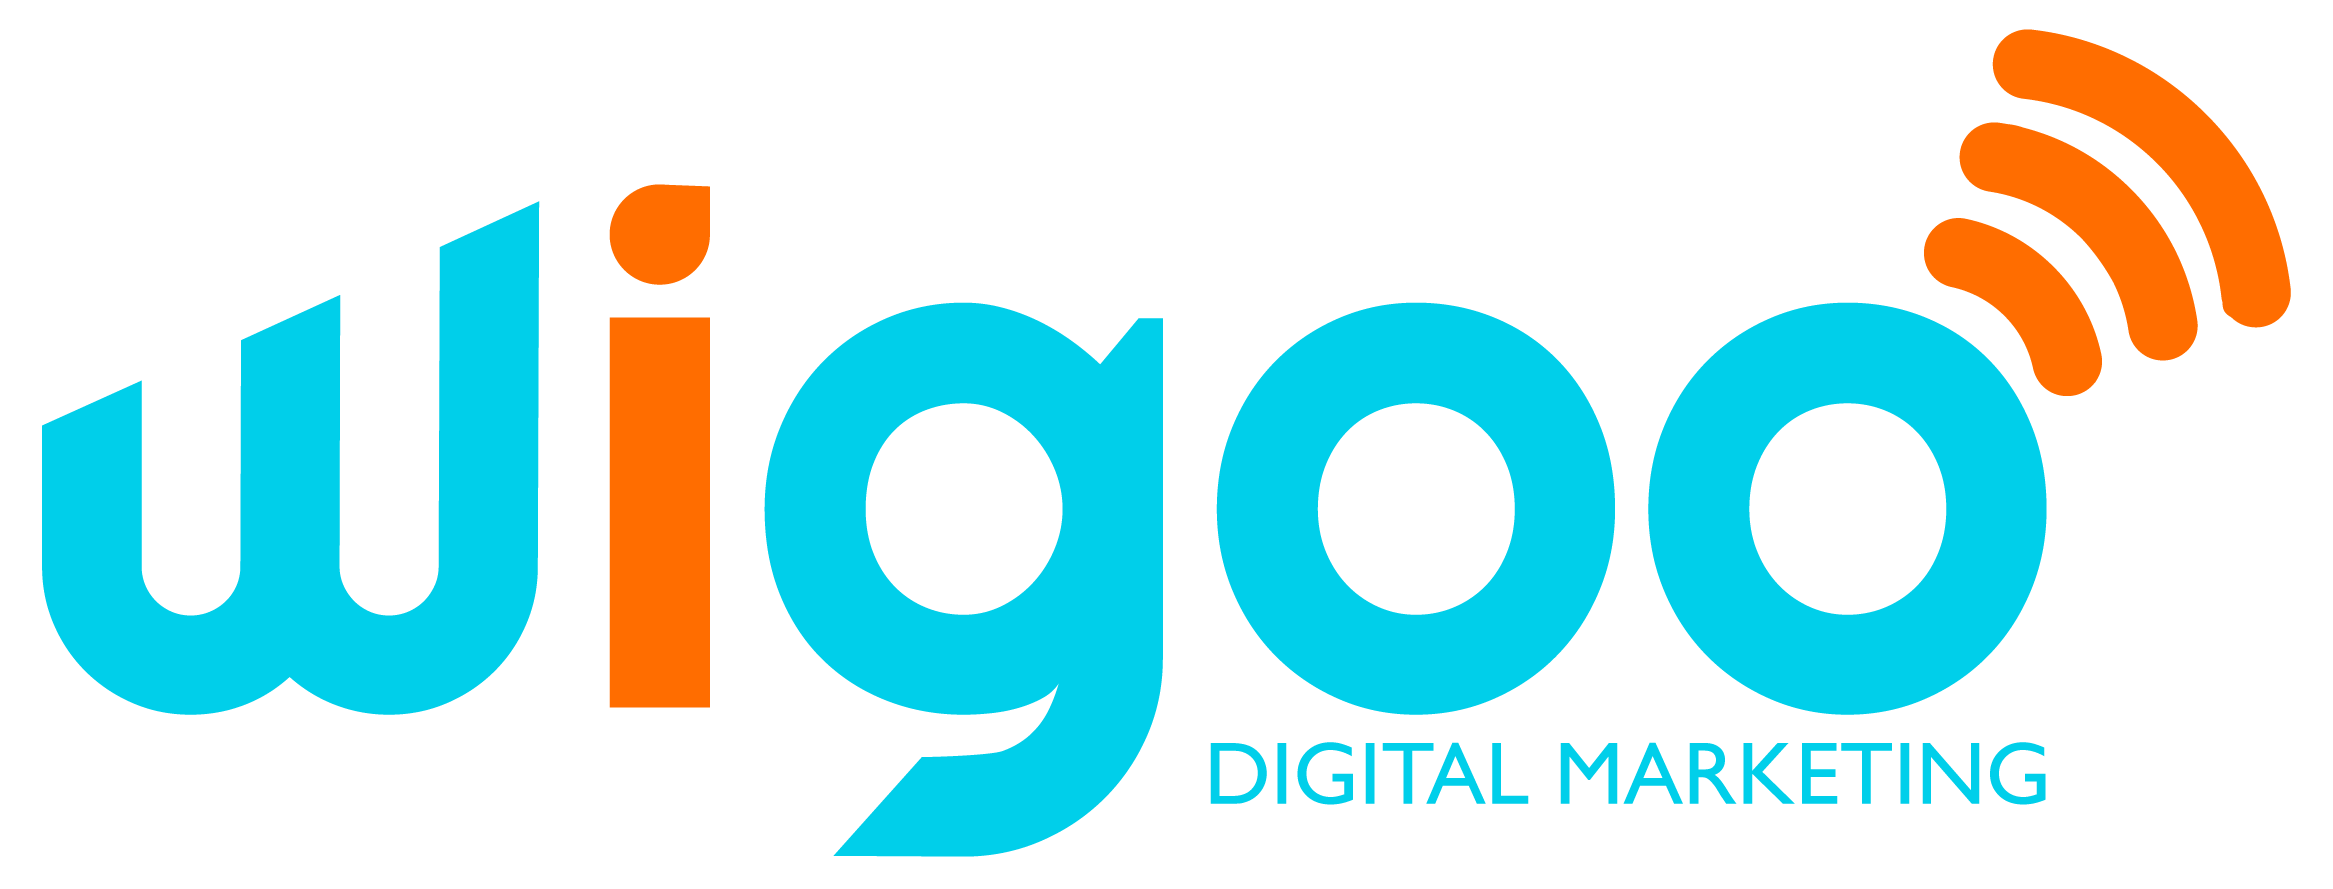 Agência Wigoo Marketing Digital